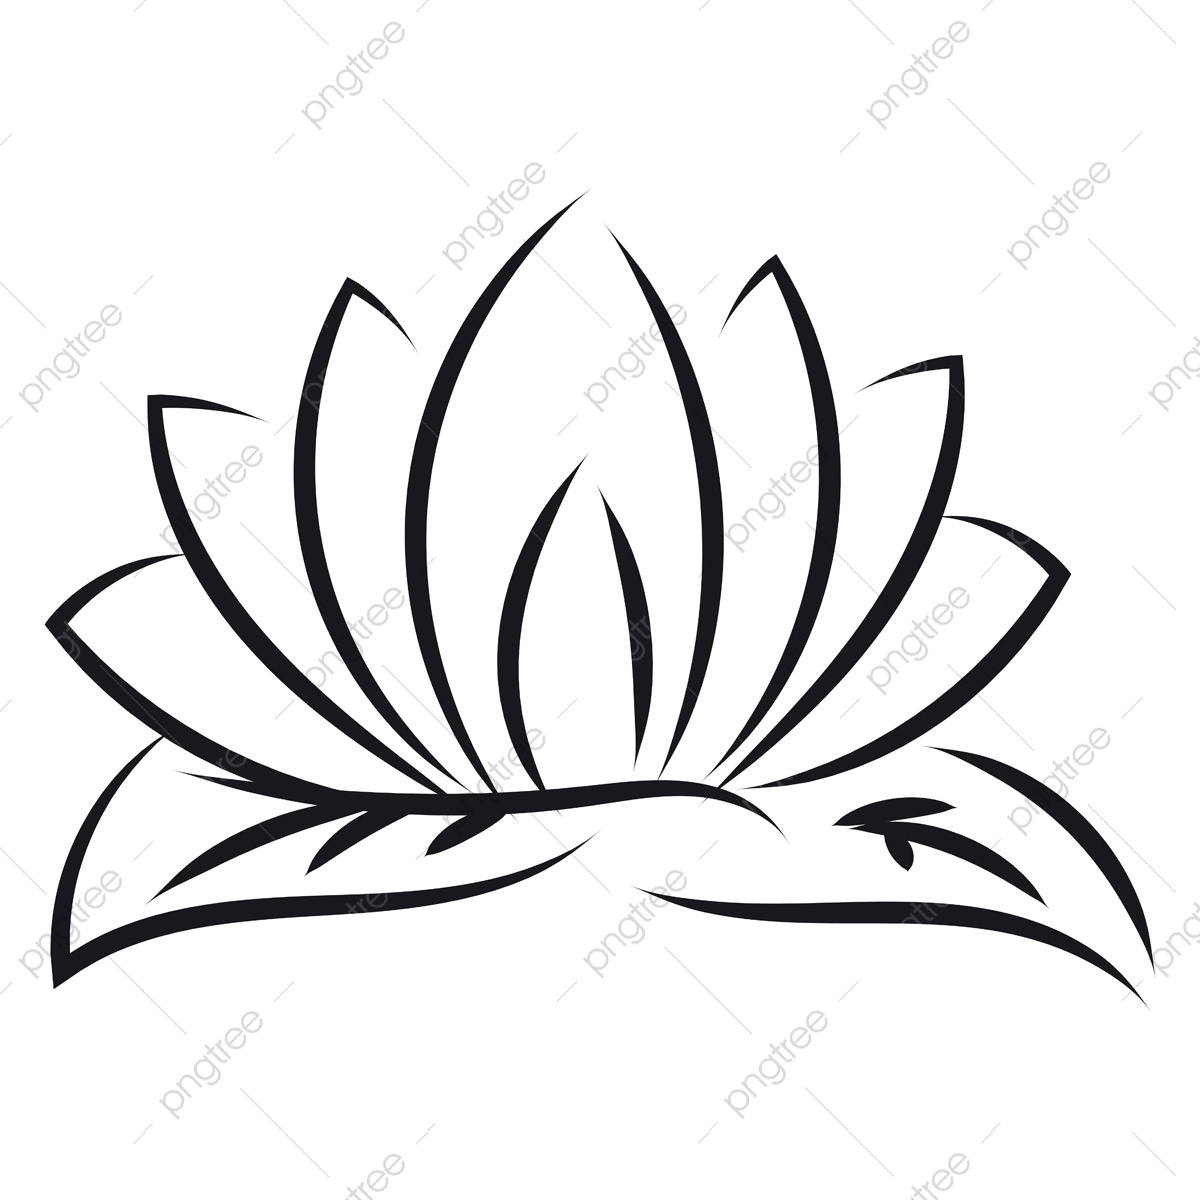 pngtree black outlines of lotus vector illustration on white background png image